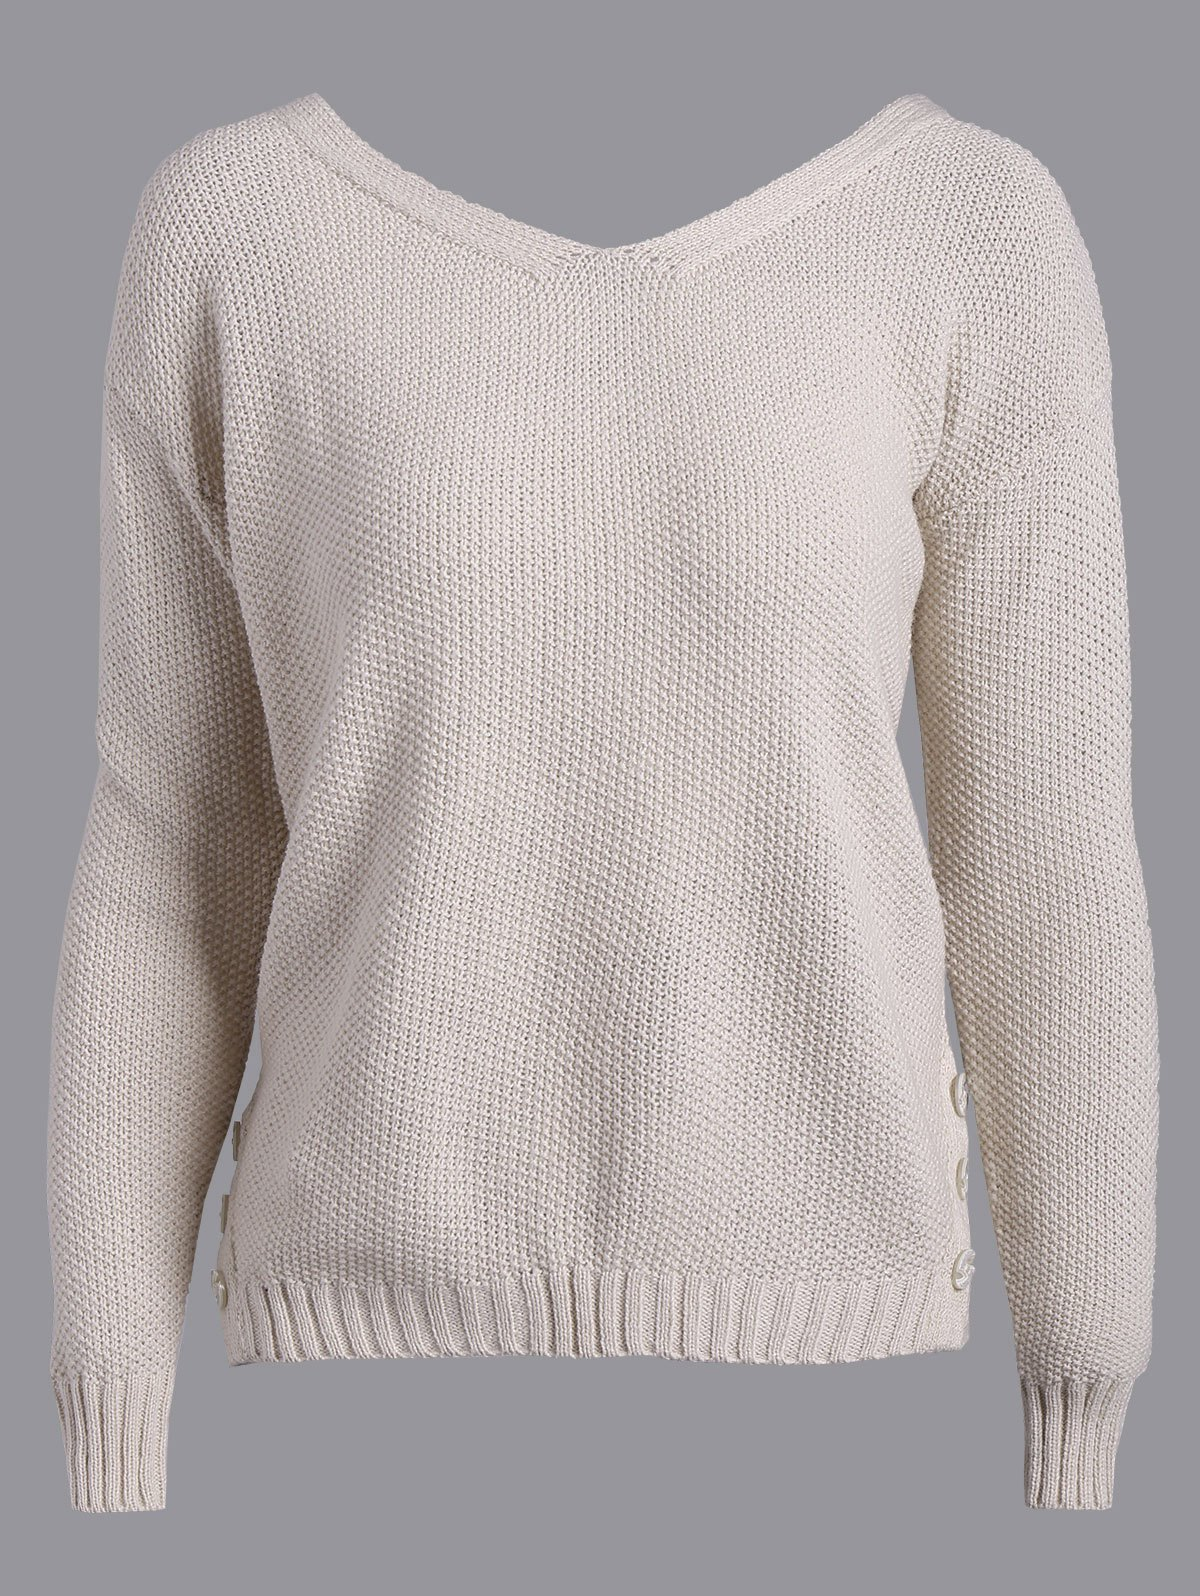 Chic Back Tie Buttons Embellished Sweater